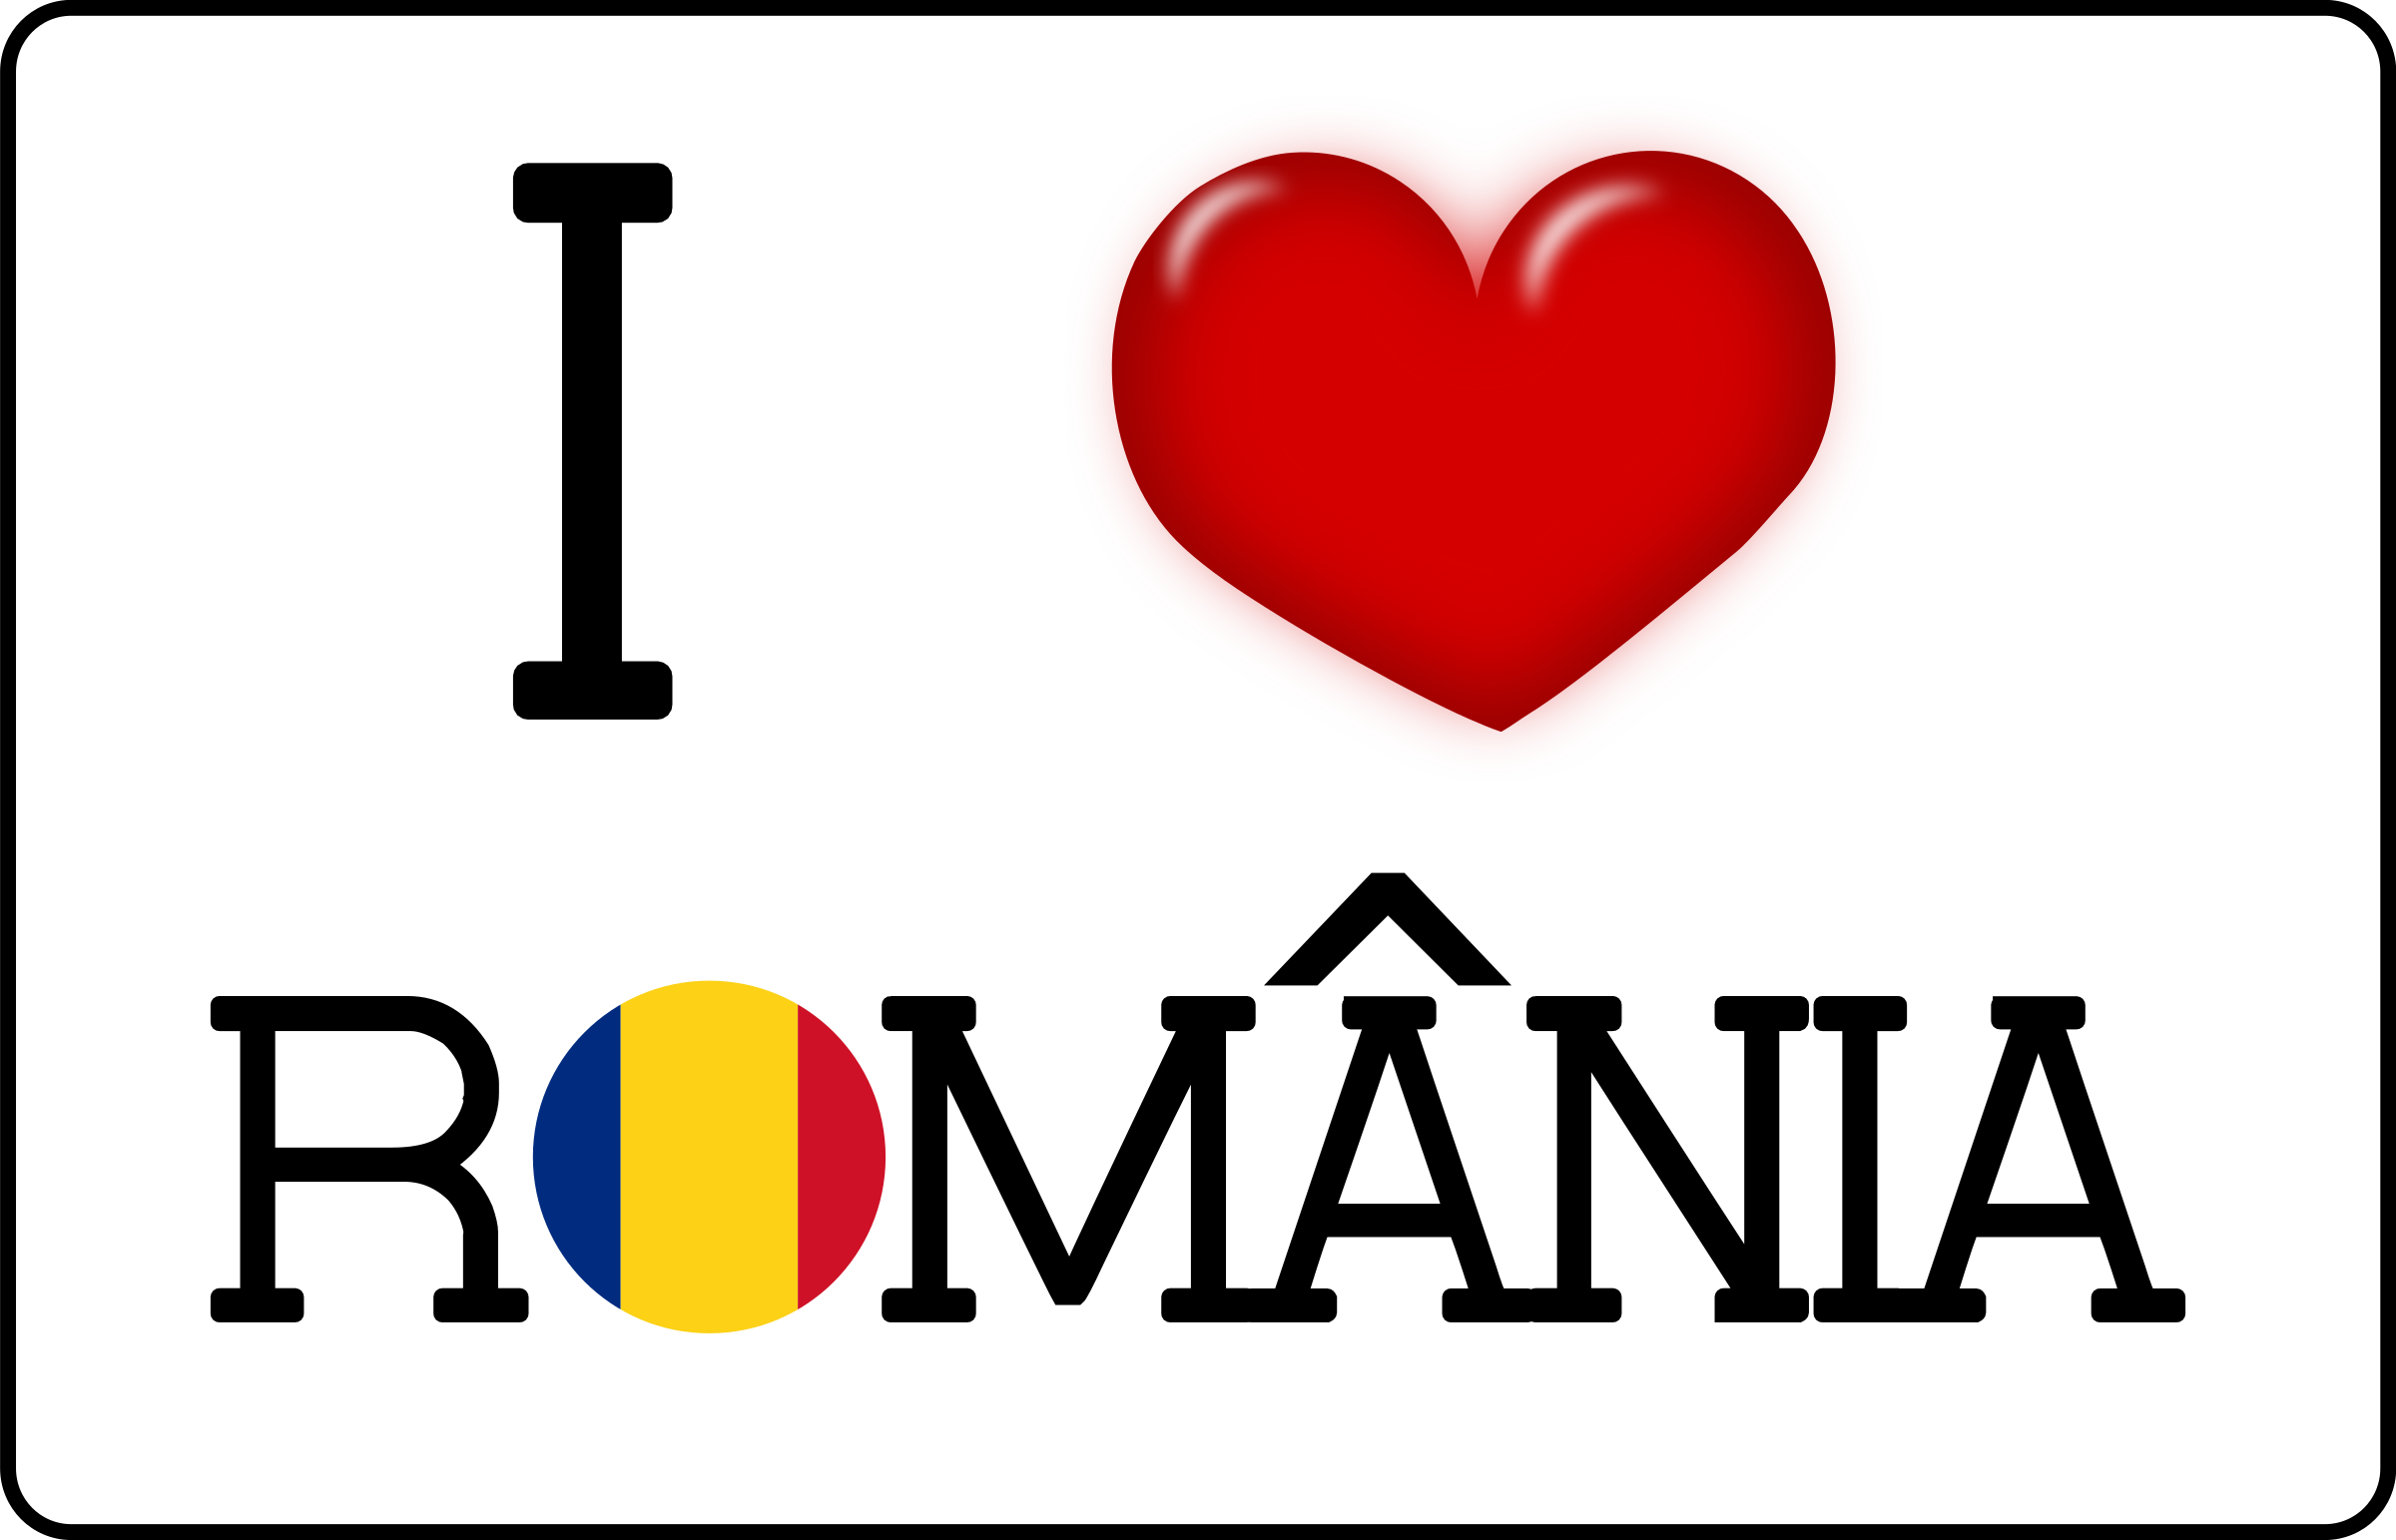 Romania clipart #13, Download drawings